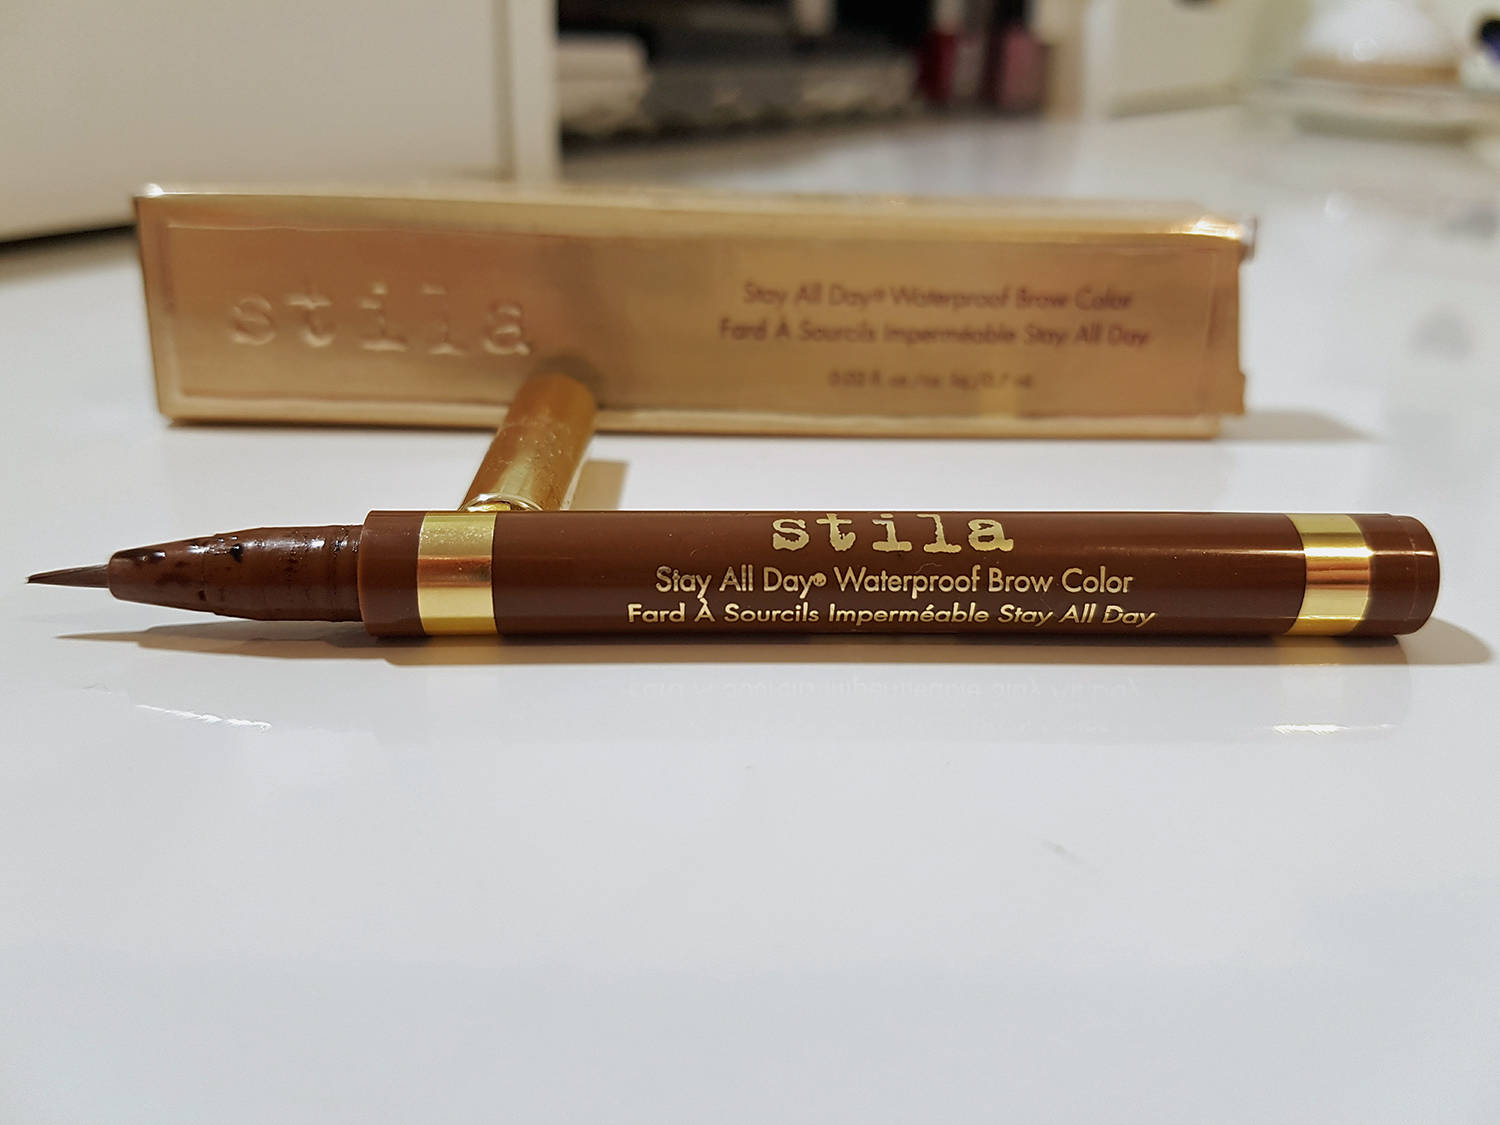 Stila waterproof brow colour